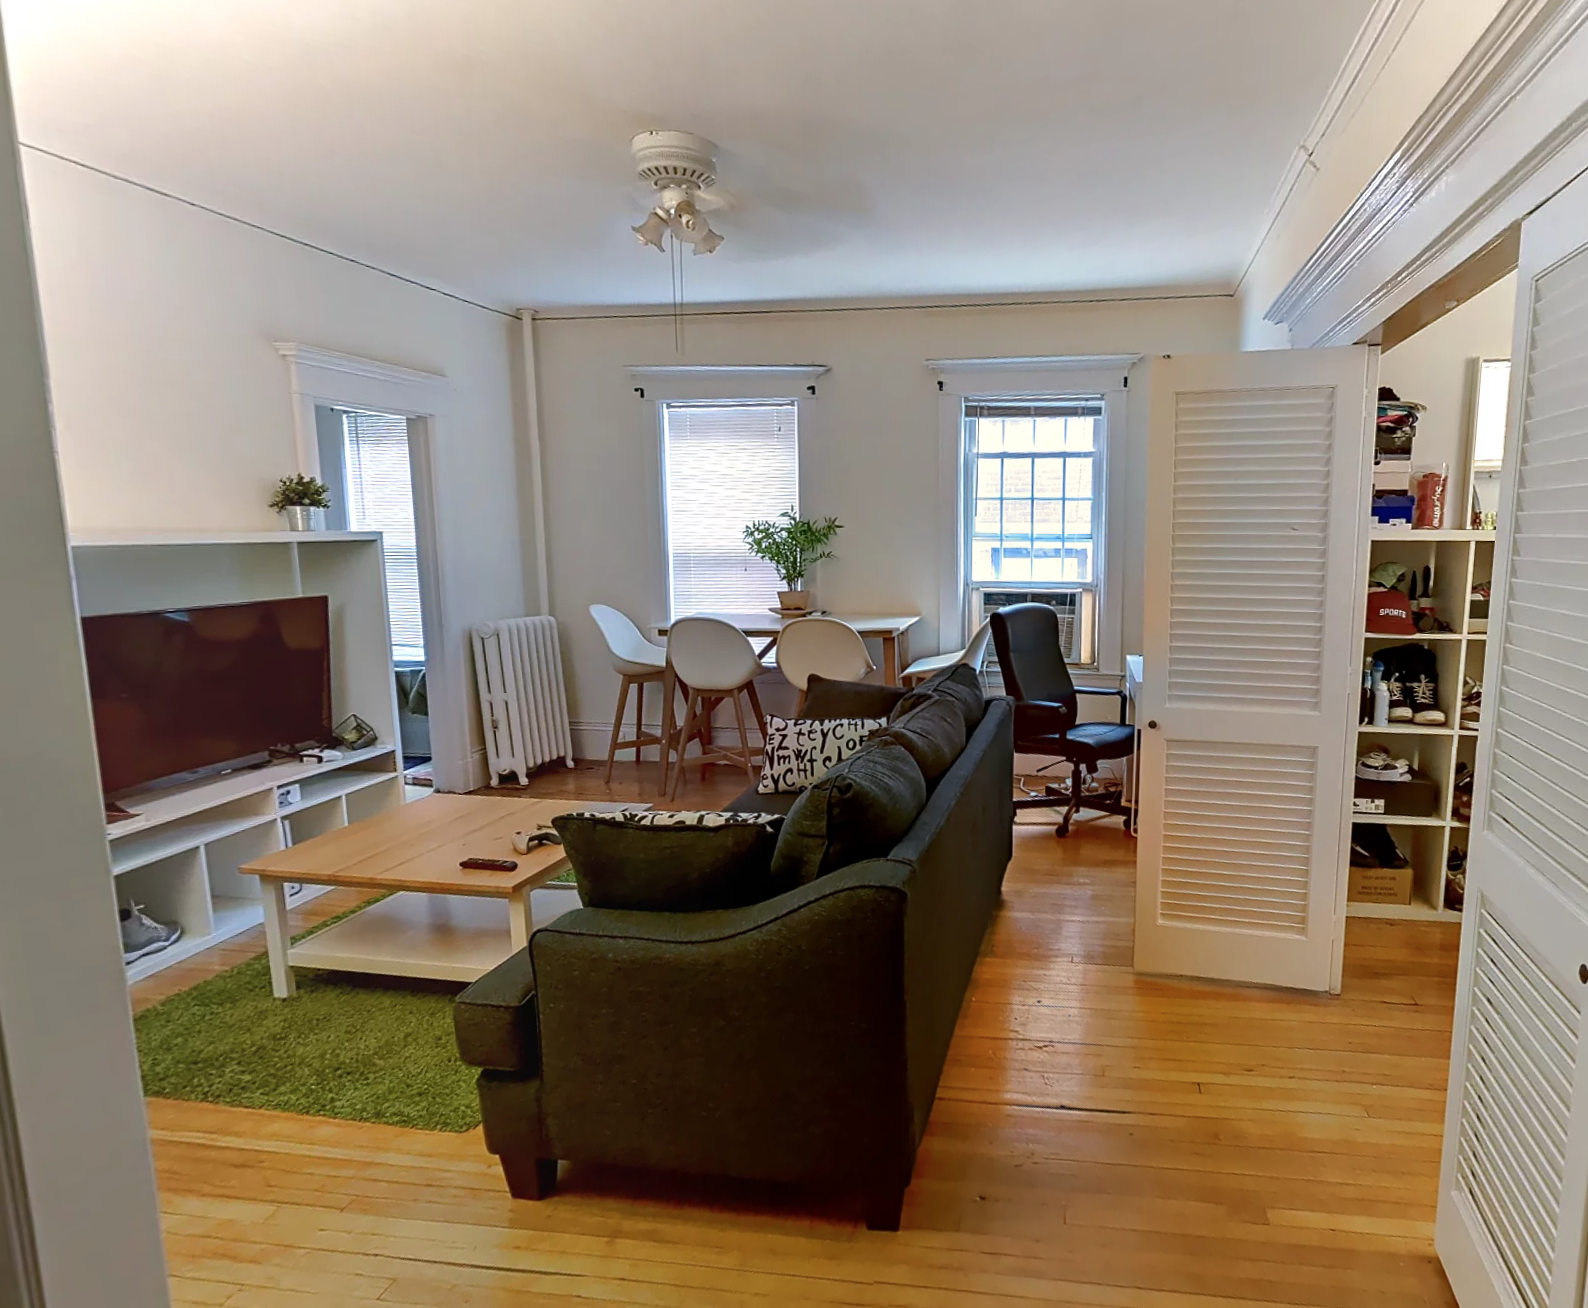 Sunny One Bedroom, Large Closets, Dec Fireplace, Hwf, high ceilings!